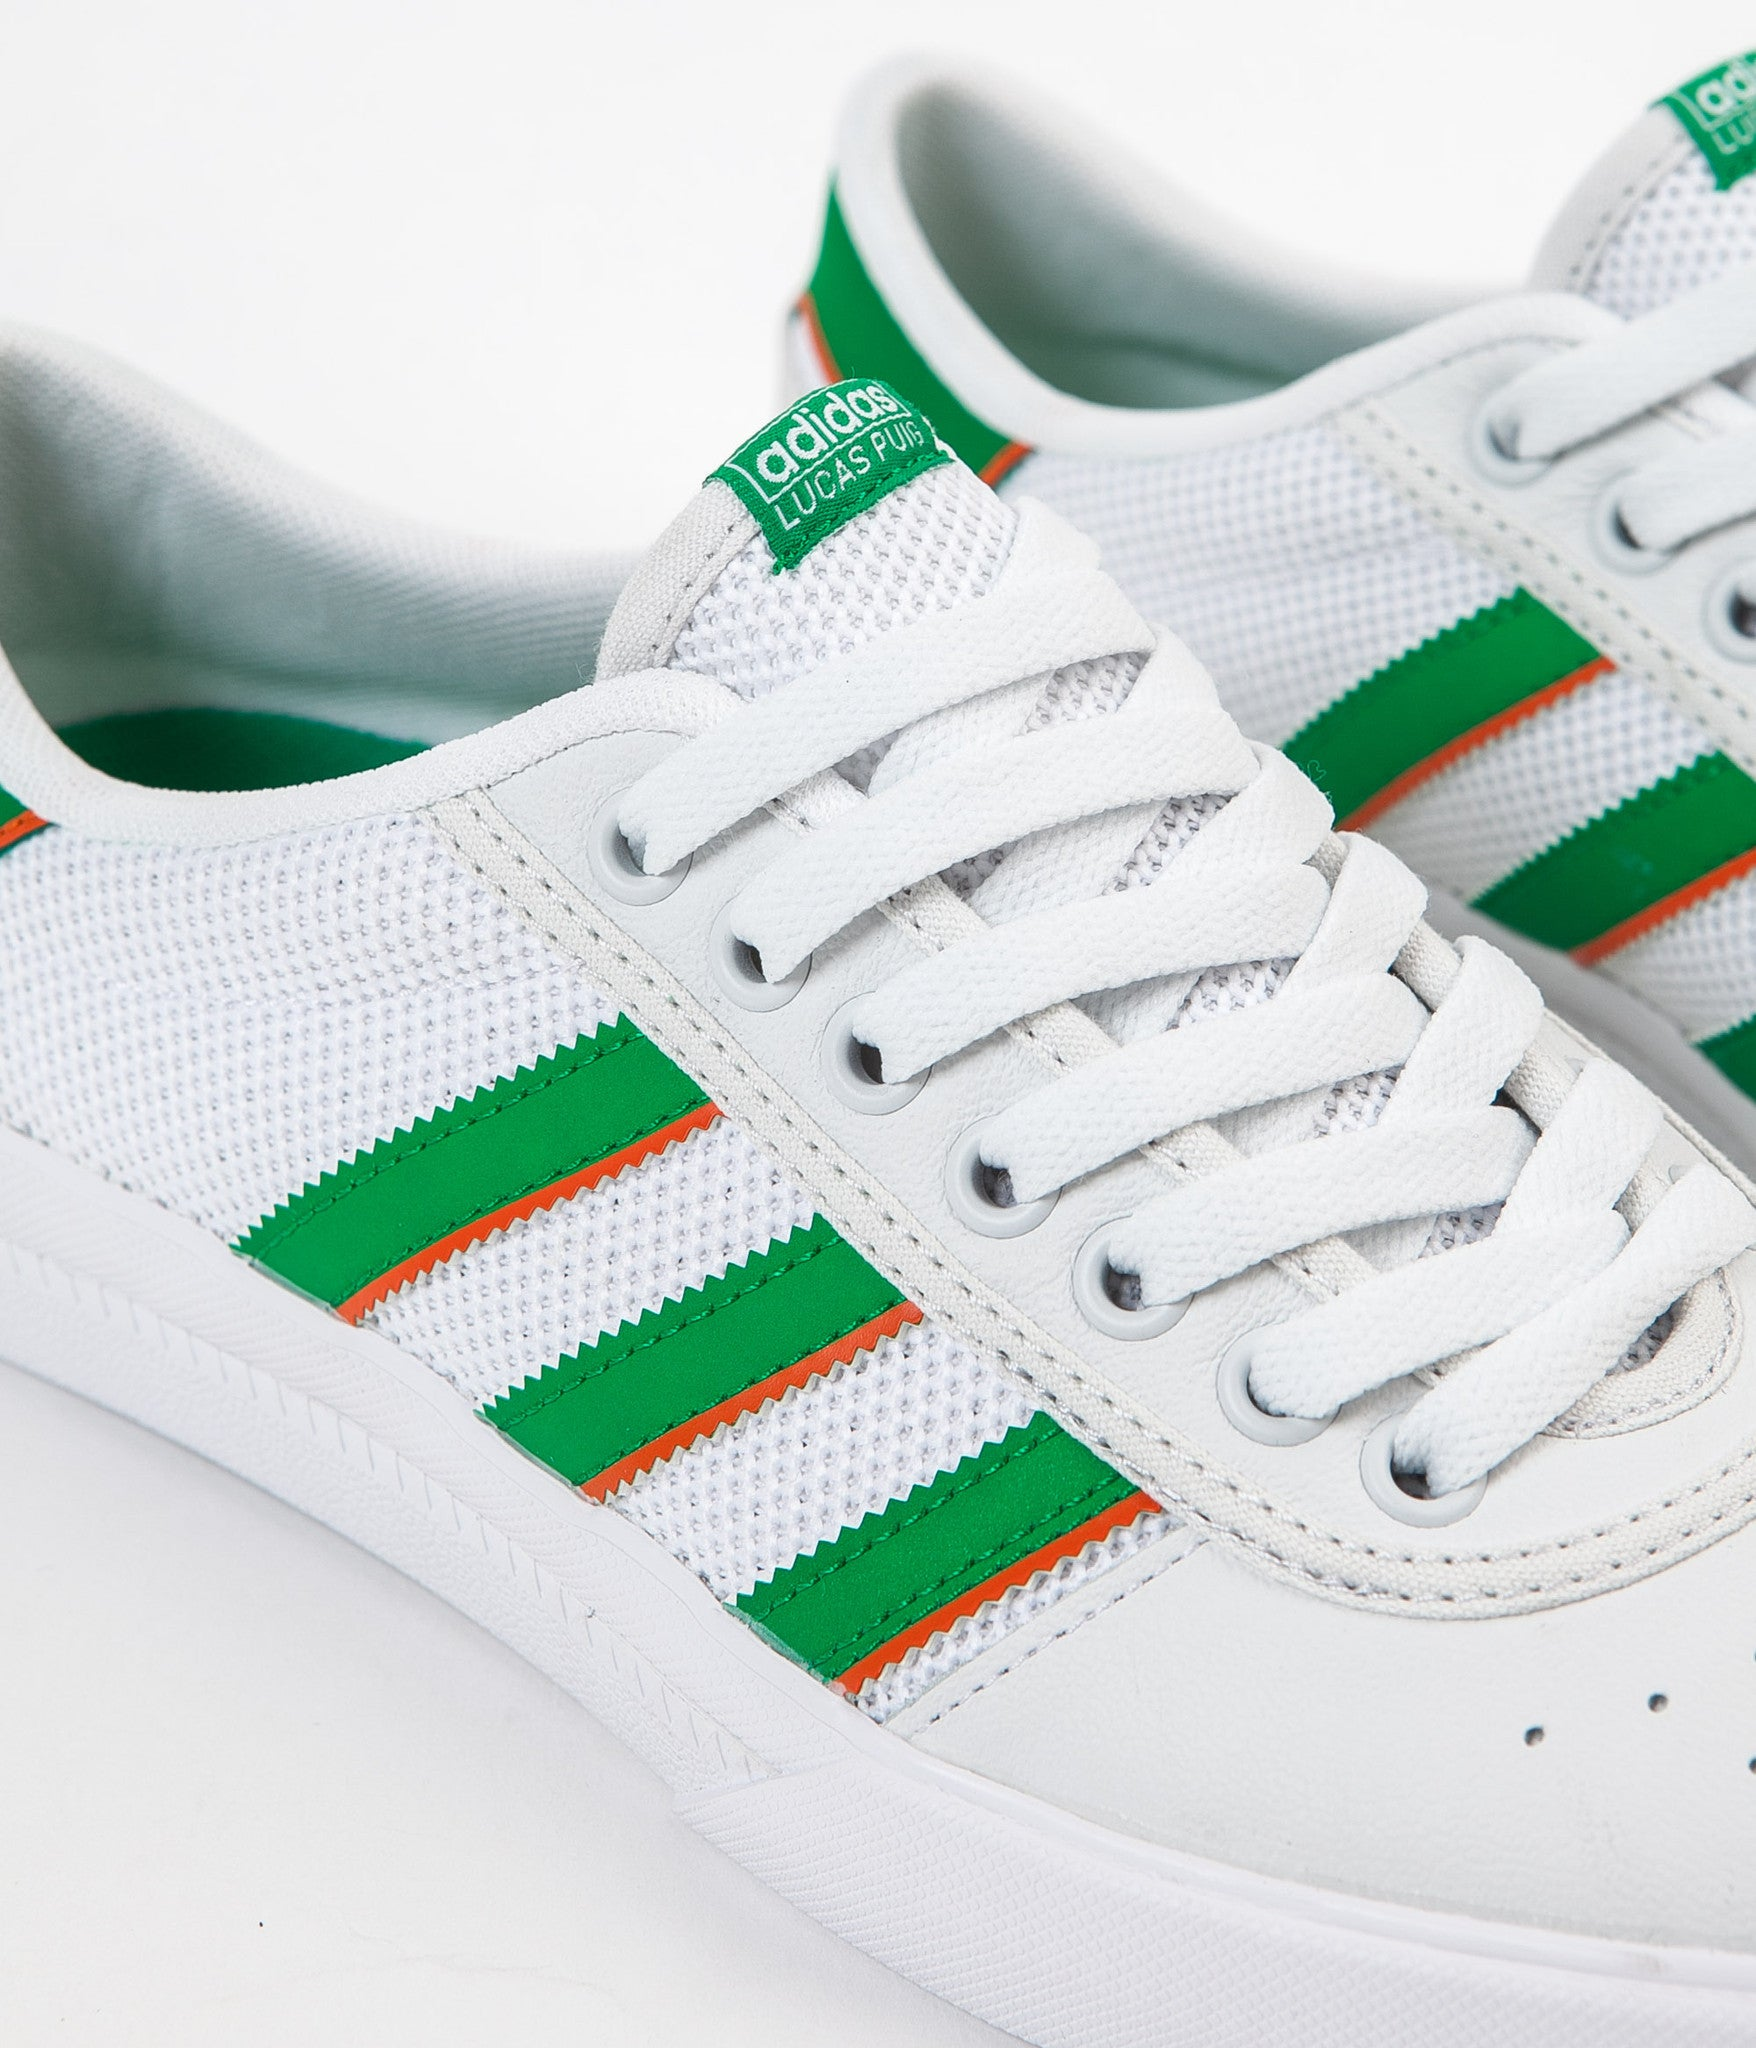 Adidas Lucas Premiere Adv Shoes - White / Green / White